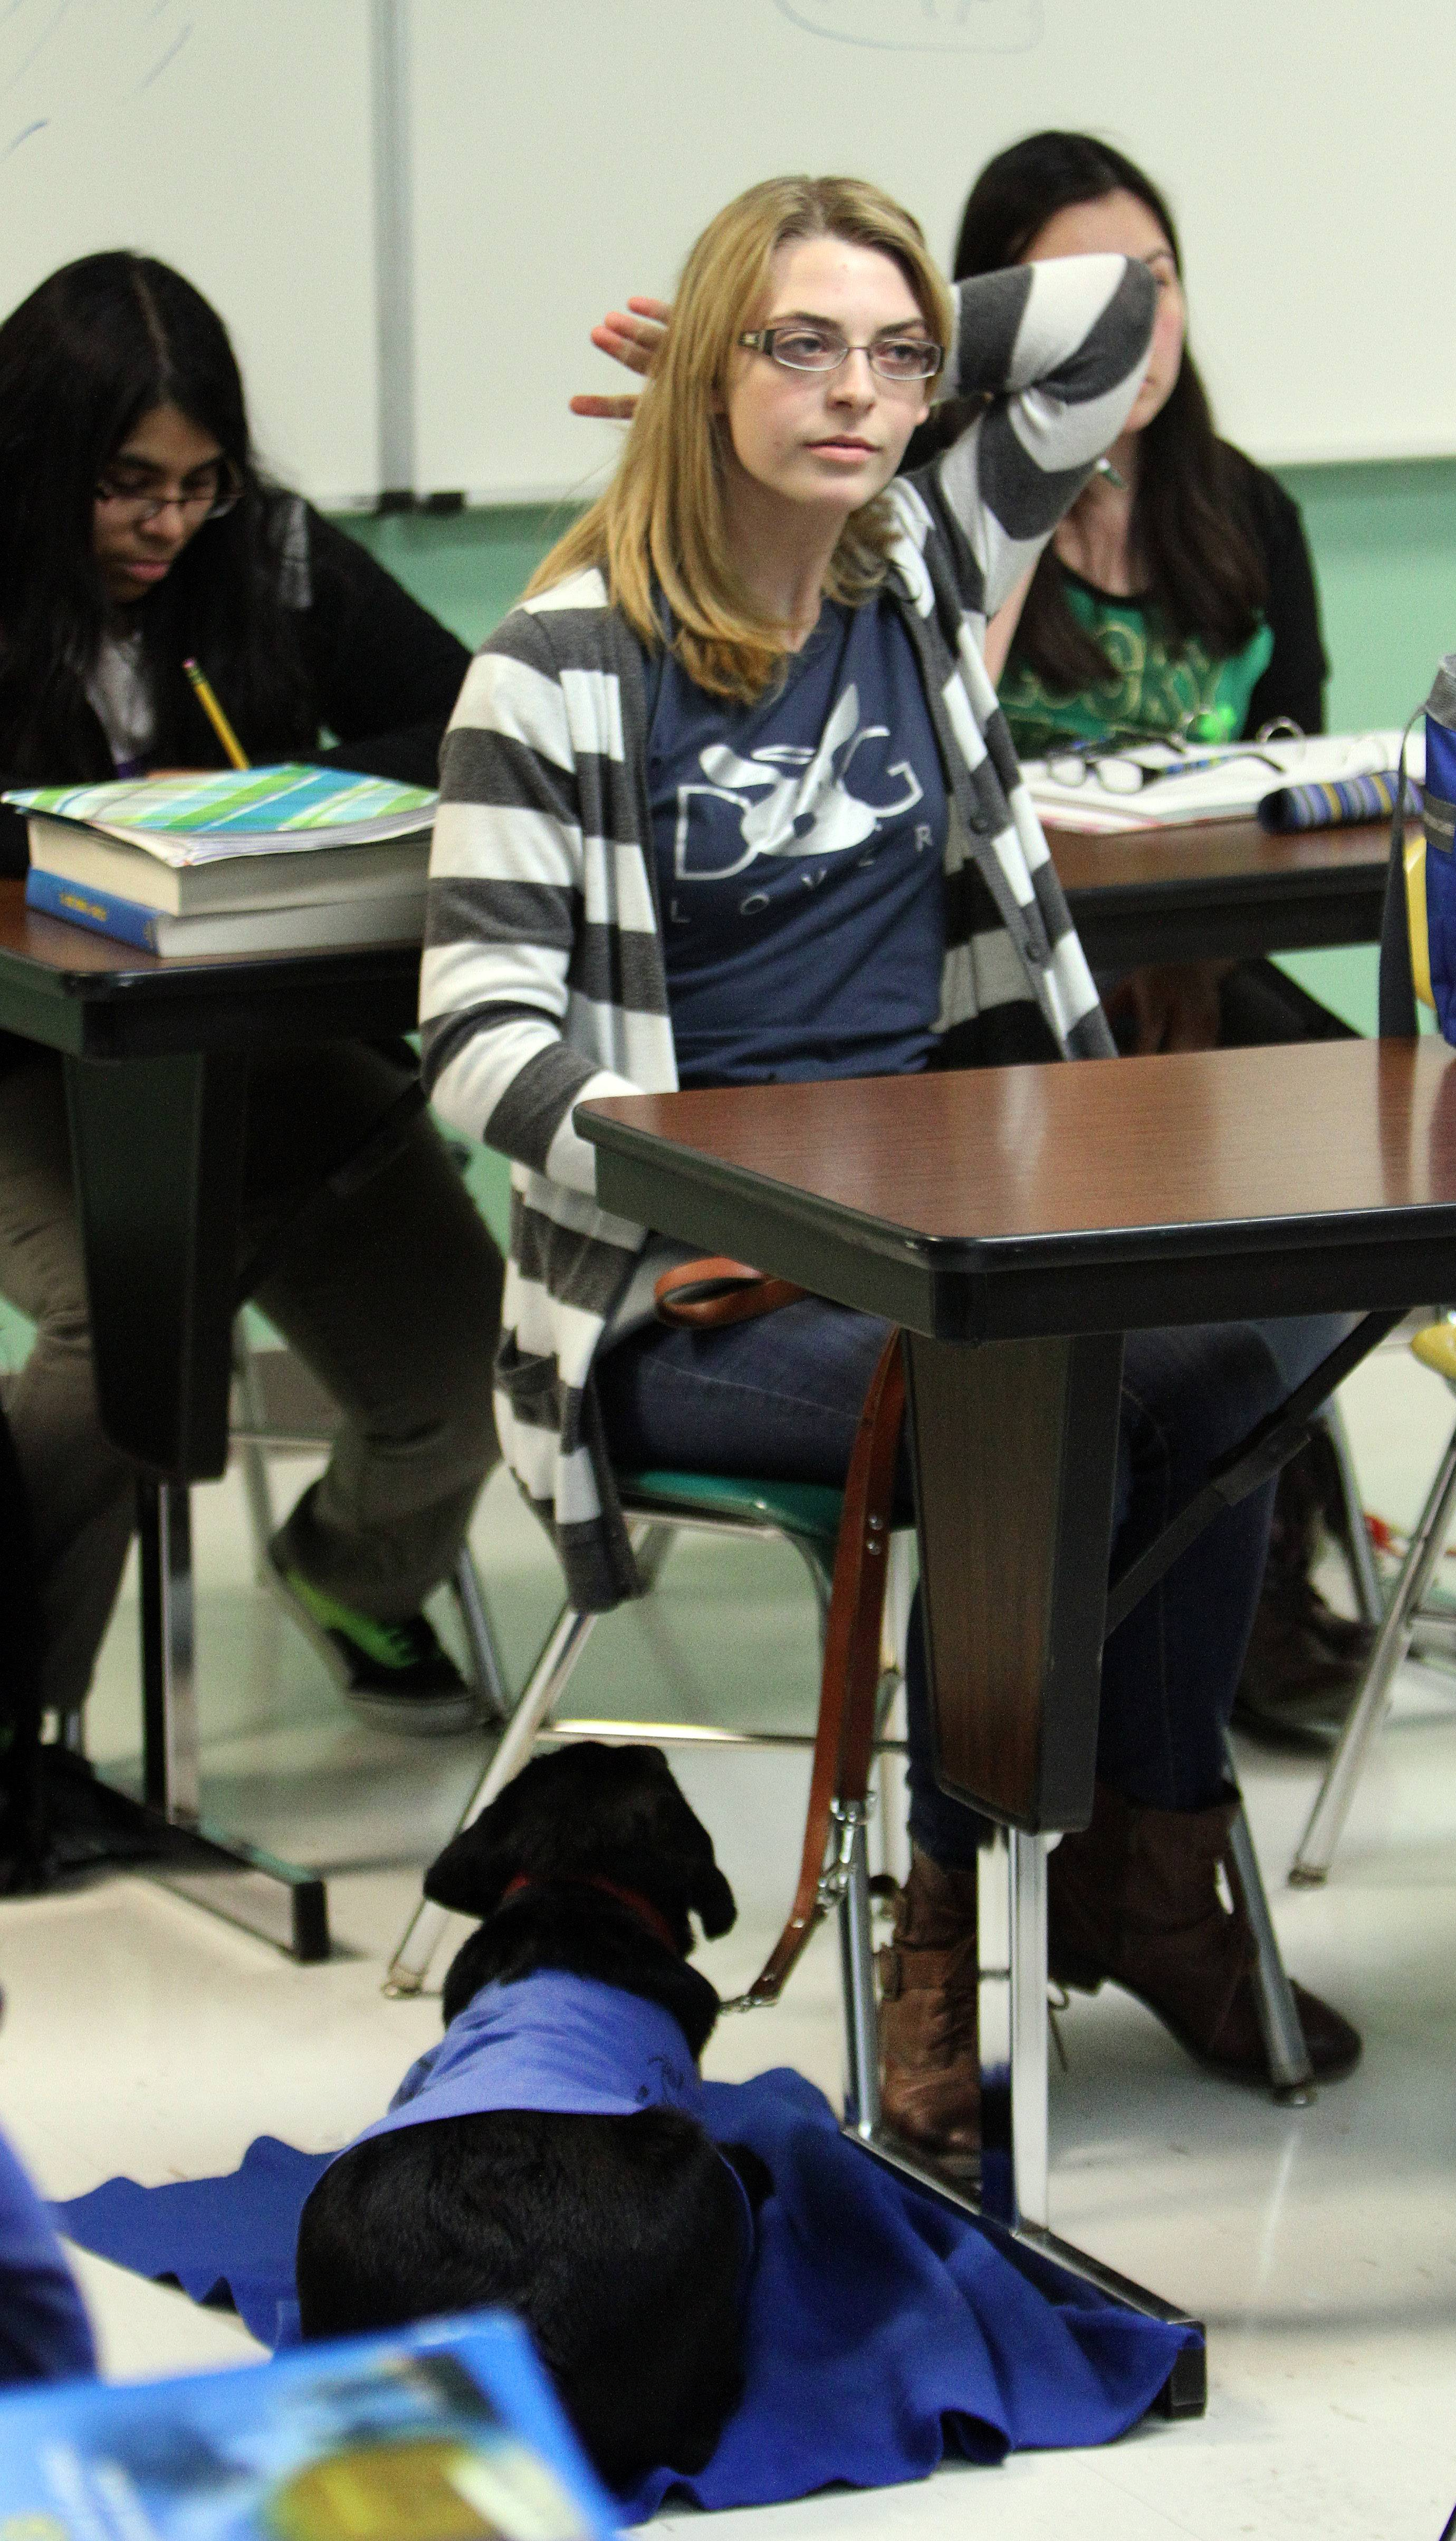 Grayslake Central High School junior Abby Perkowitz is providing guide dog training for Bailey at the school.